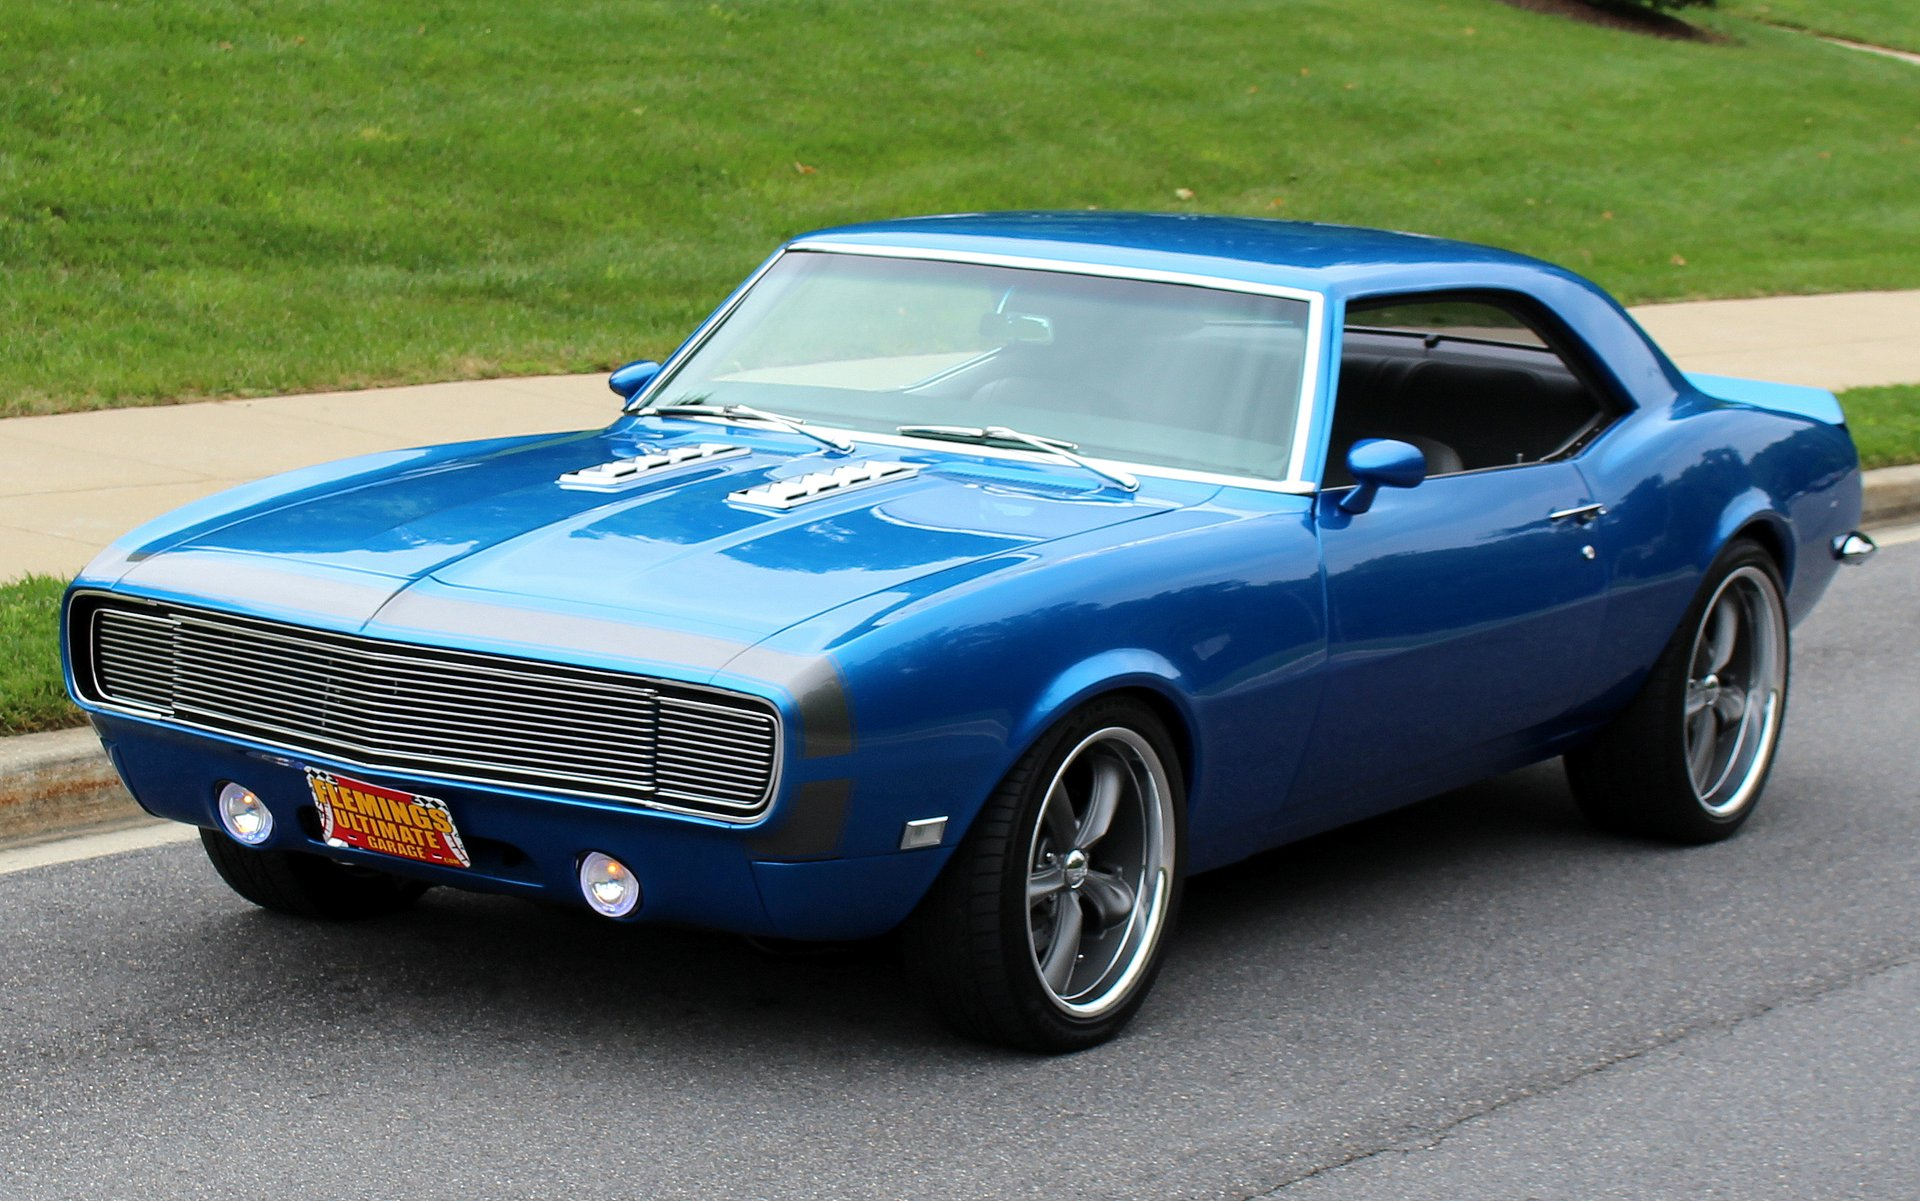 1968 Chevrolet Camaro Rs Ss Pro Touring For Sale 51372 Mcg Blue